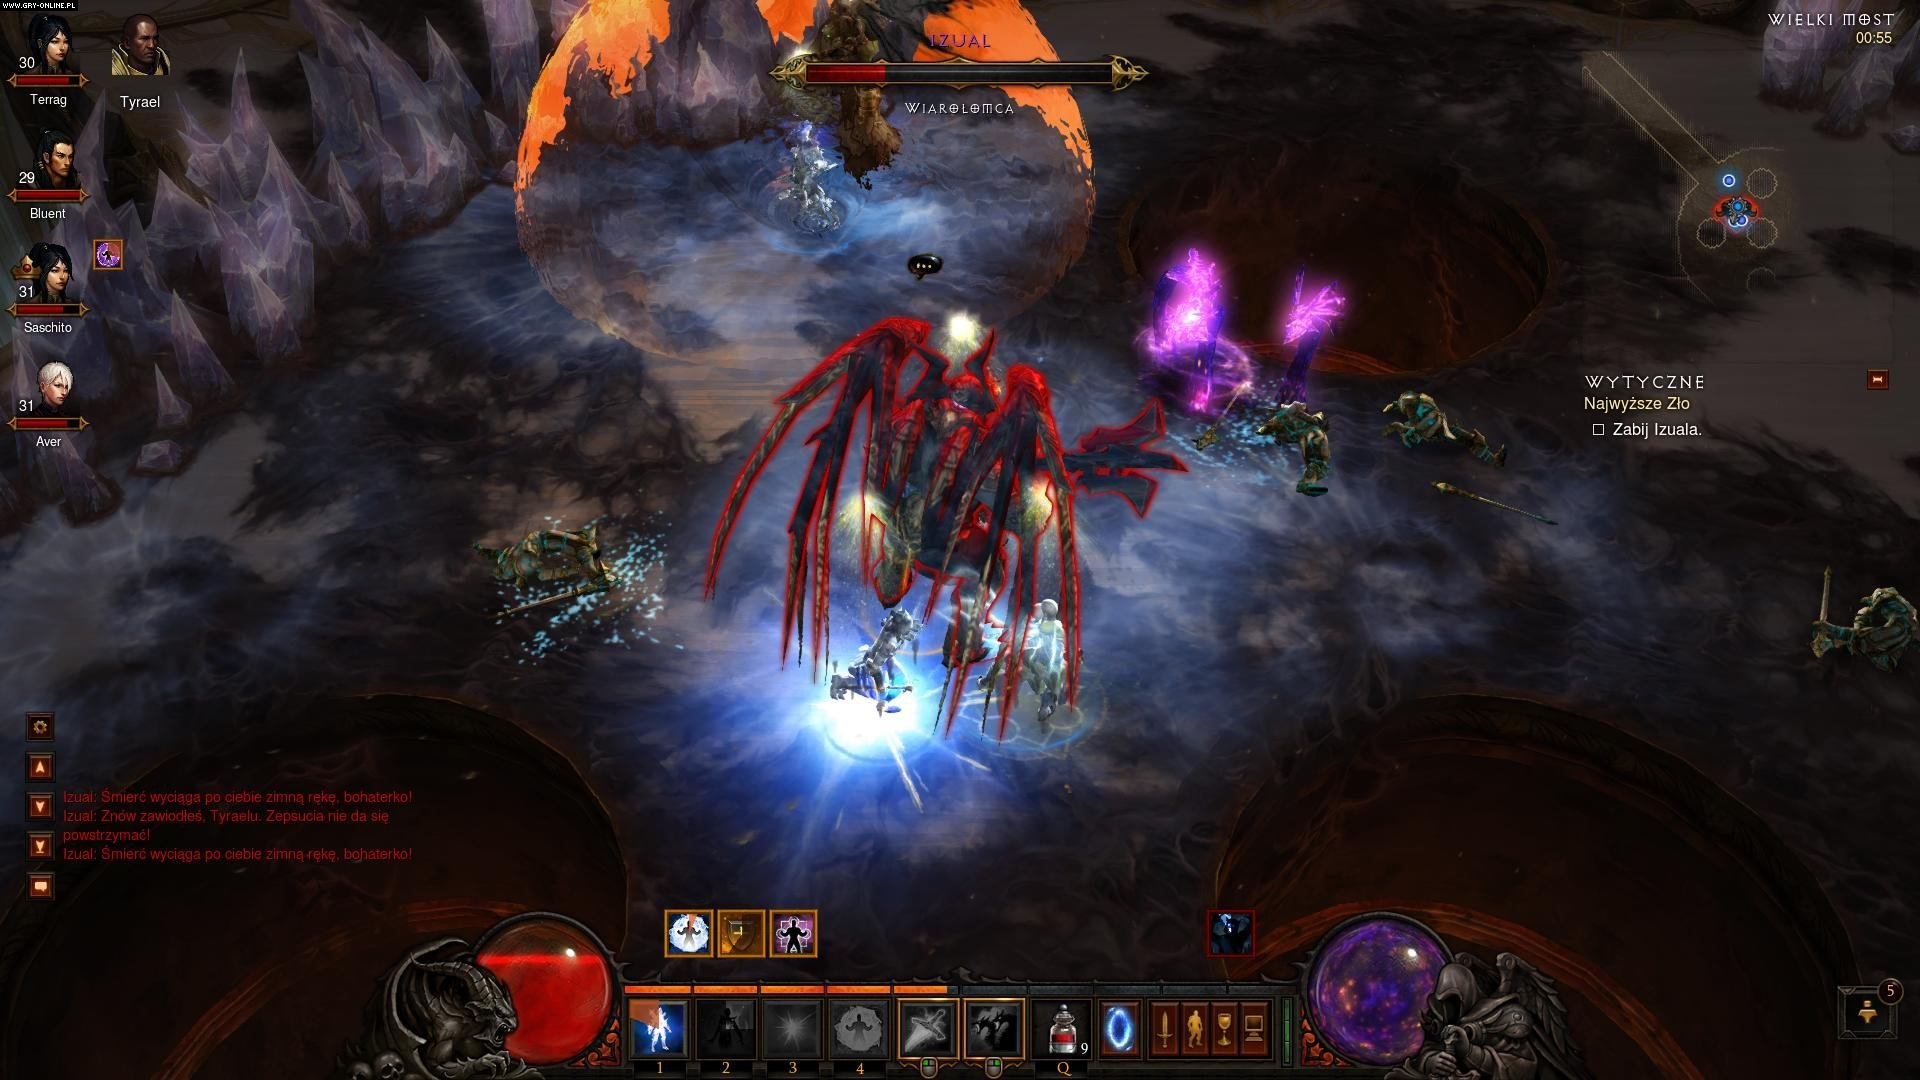 Diablo III PC Gry Screen 49/209, Blizzard Entertainment